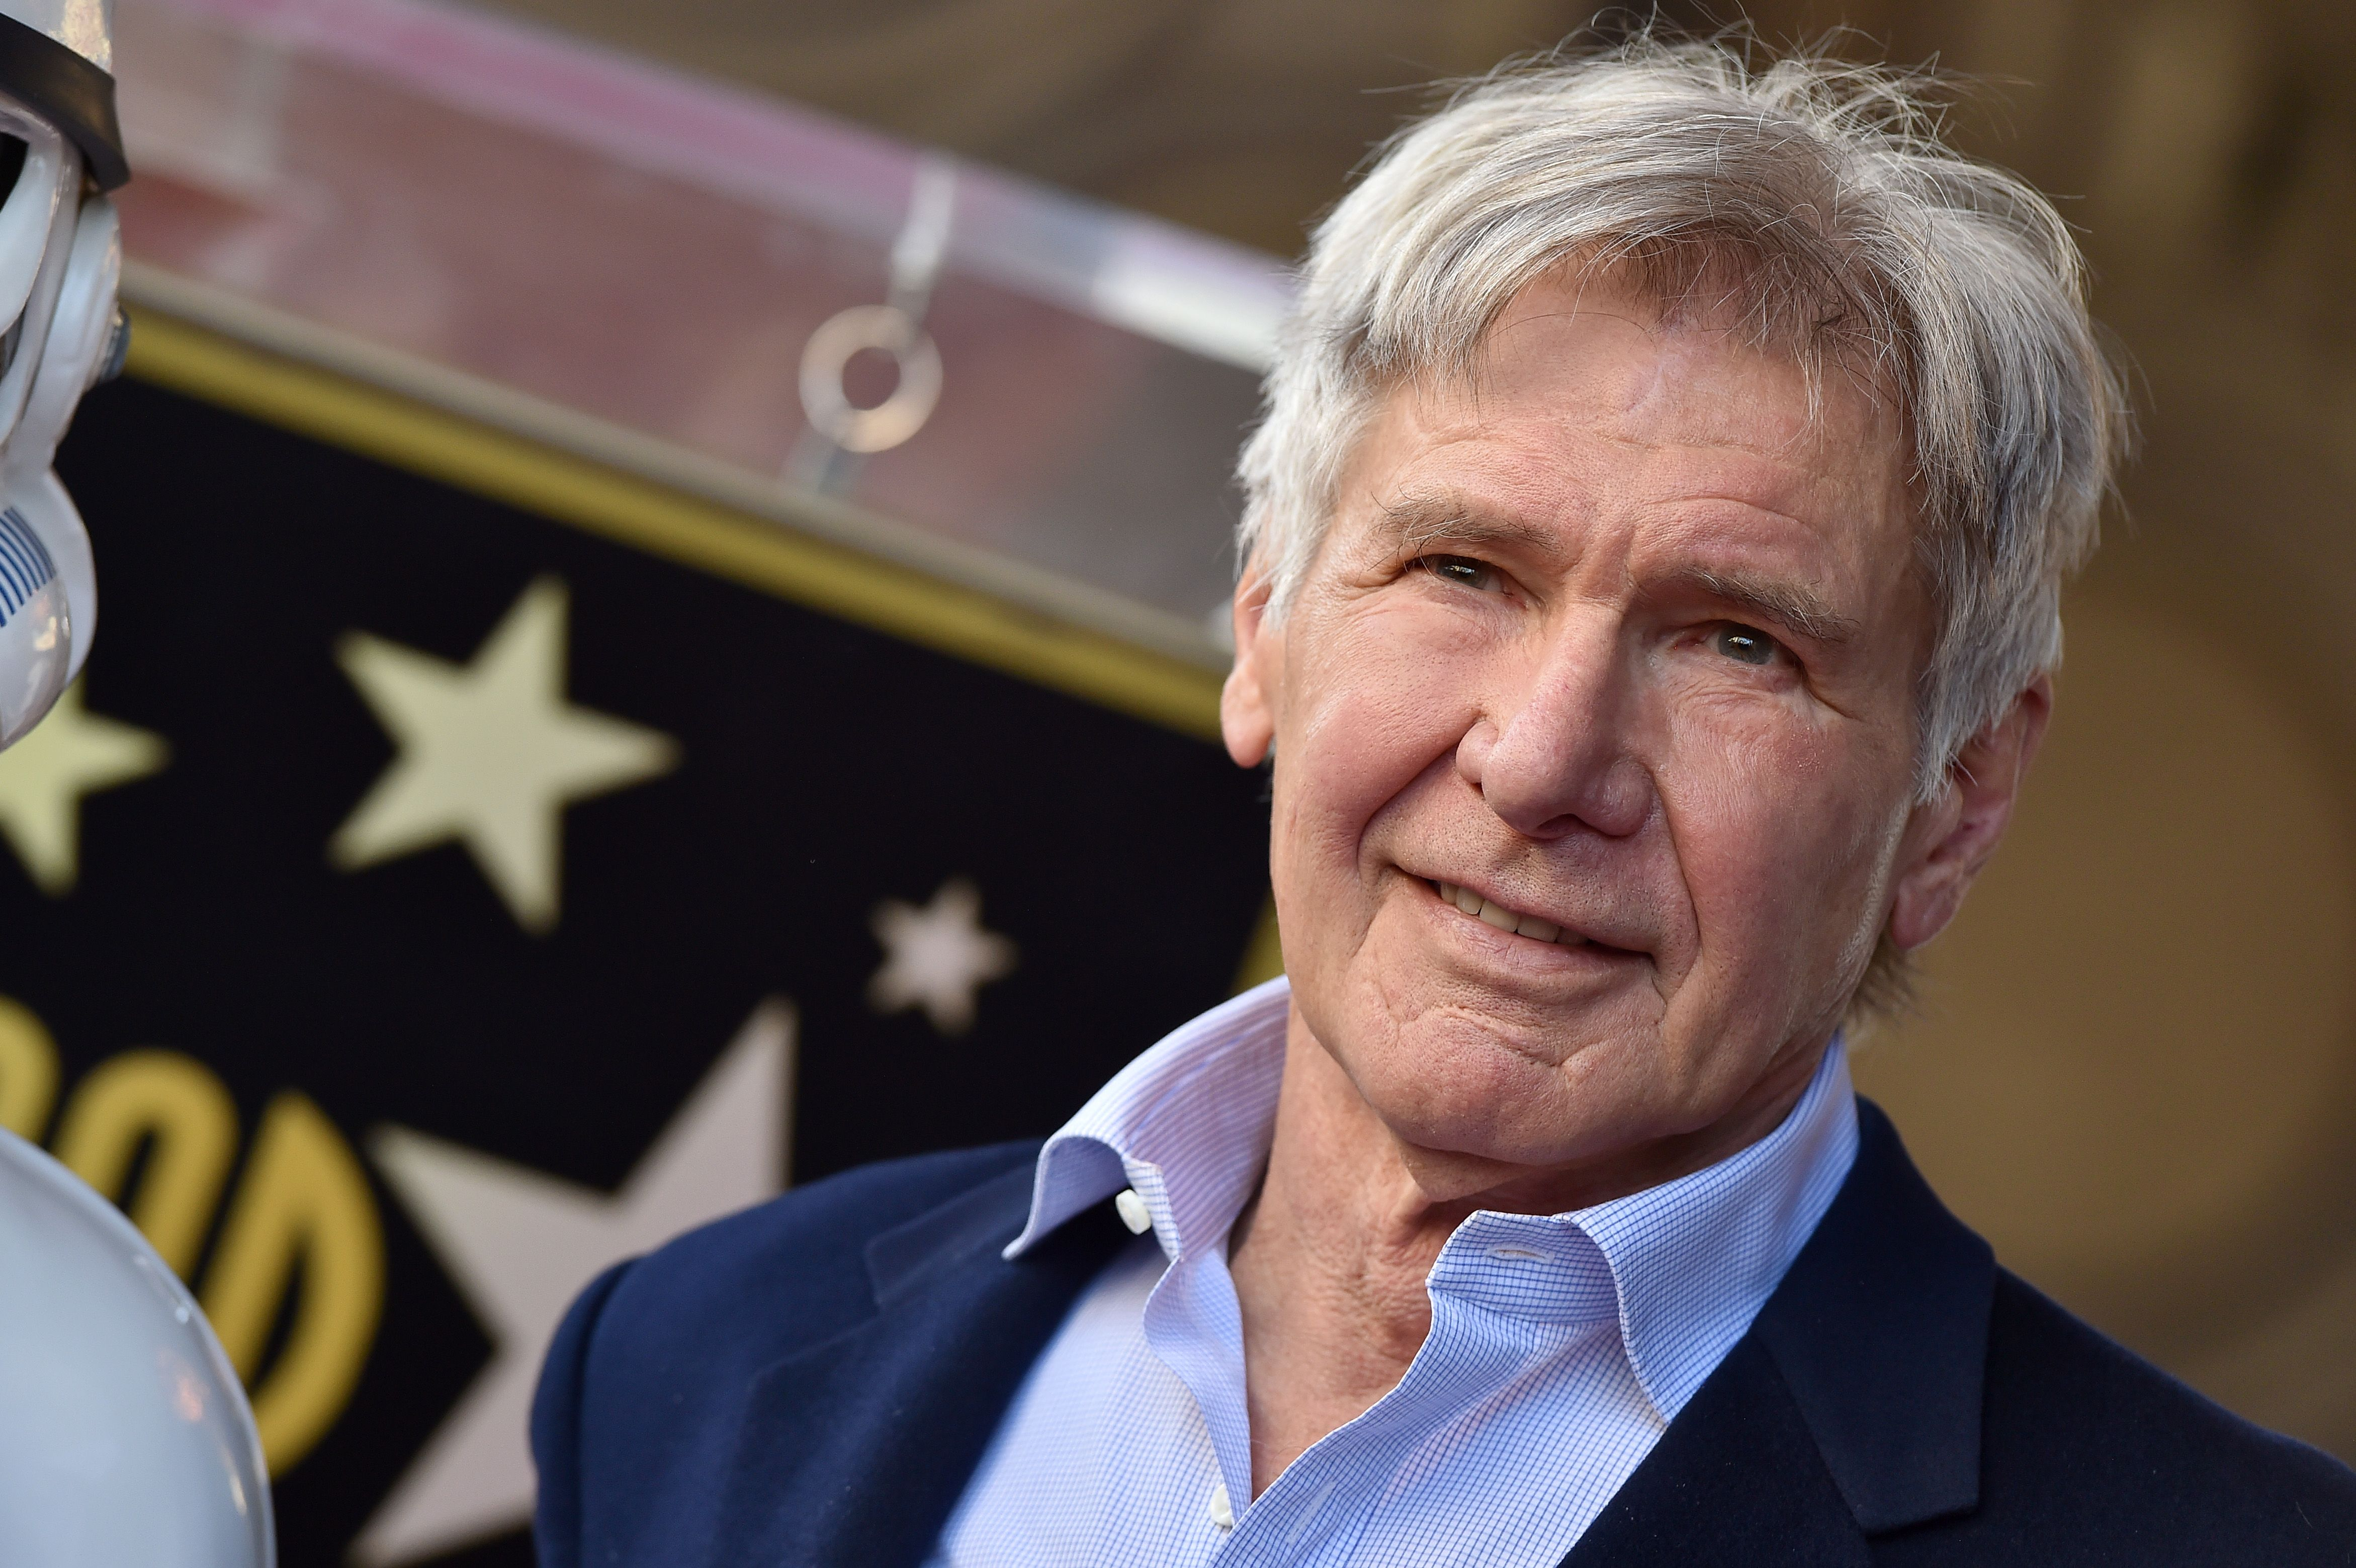 Harrison Ford at 76 The actor continues to star in blockbusters like Star Wars: The Force Awakens and Blade Runner 2049.